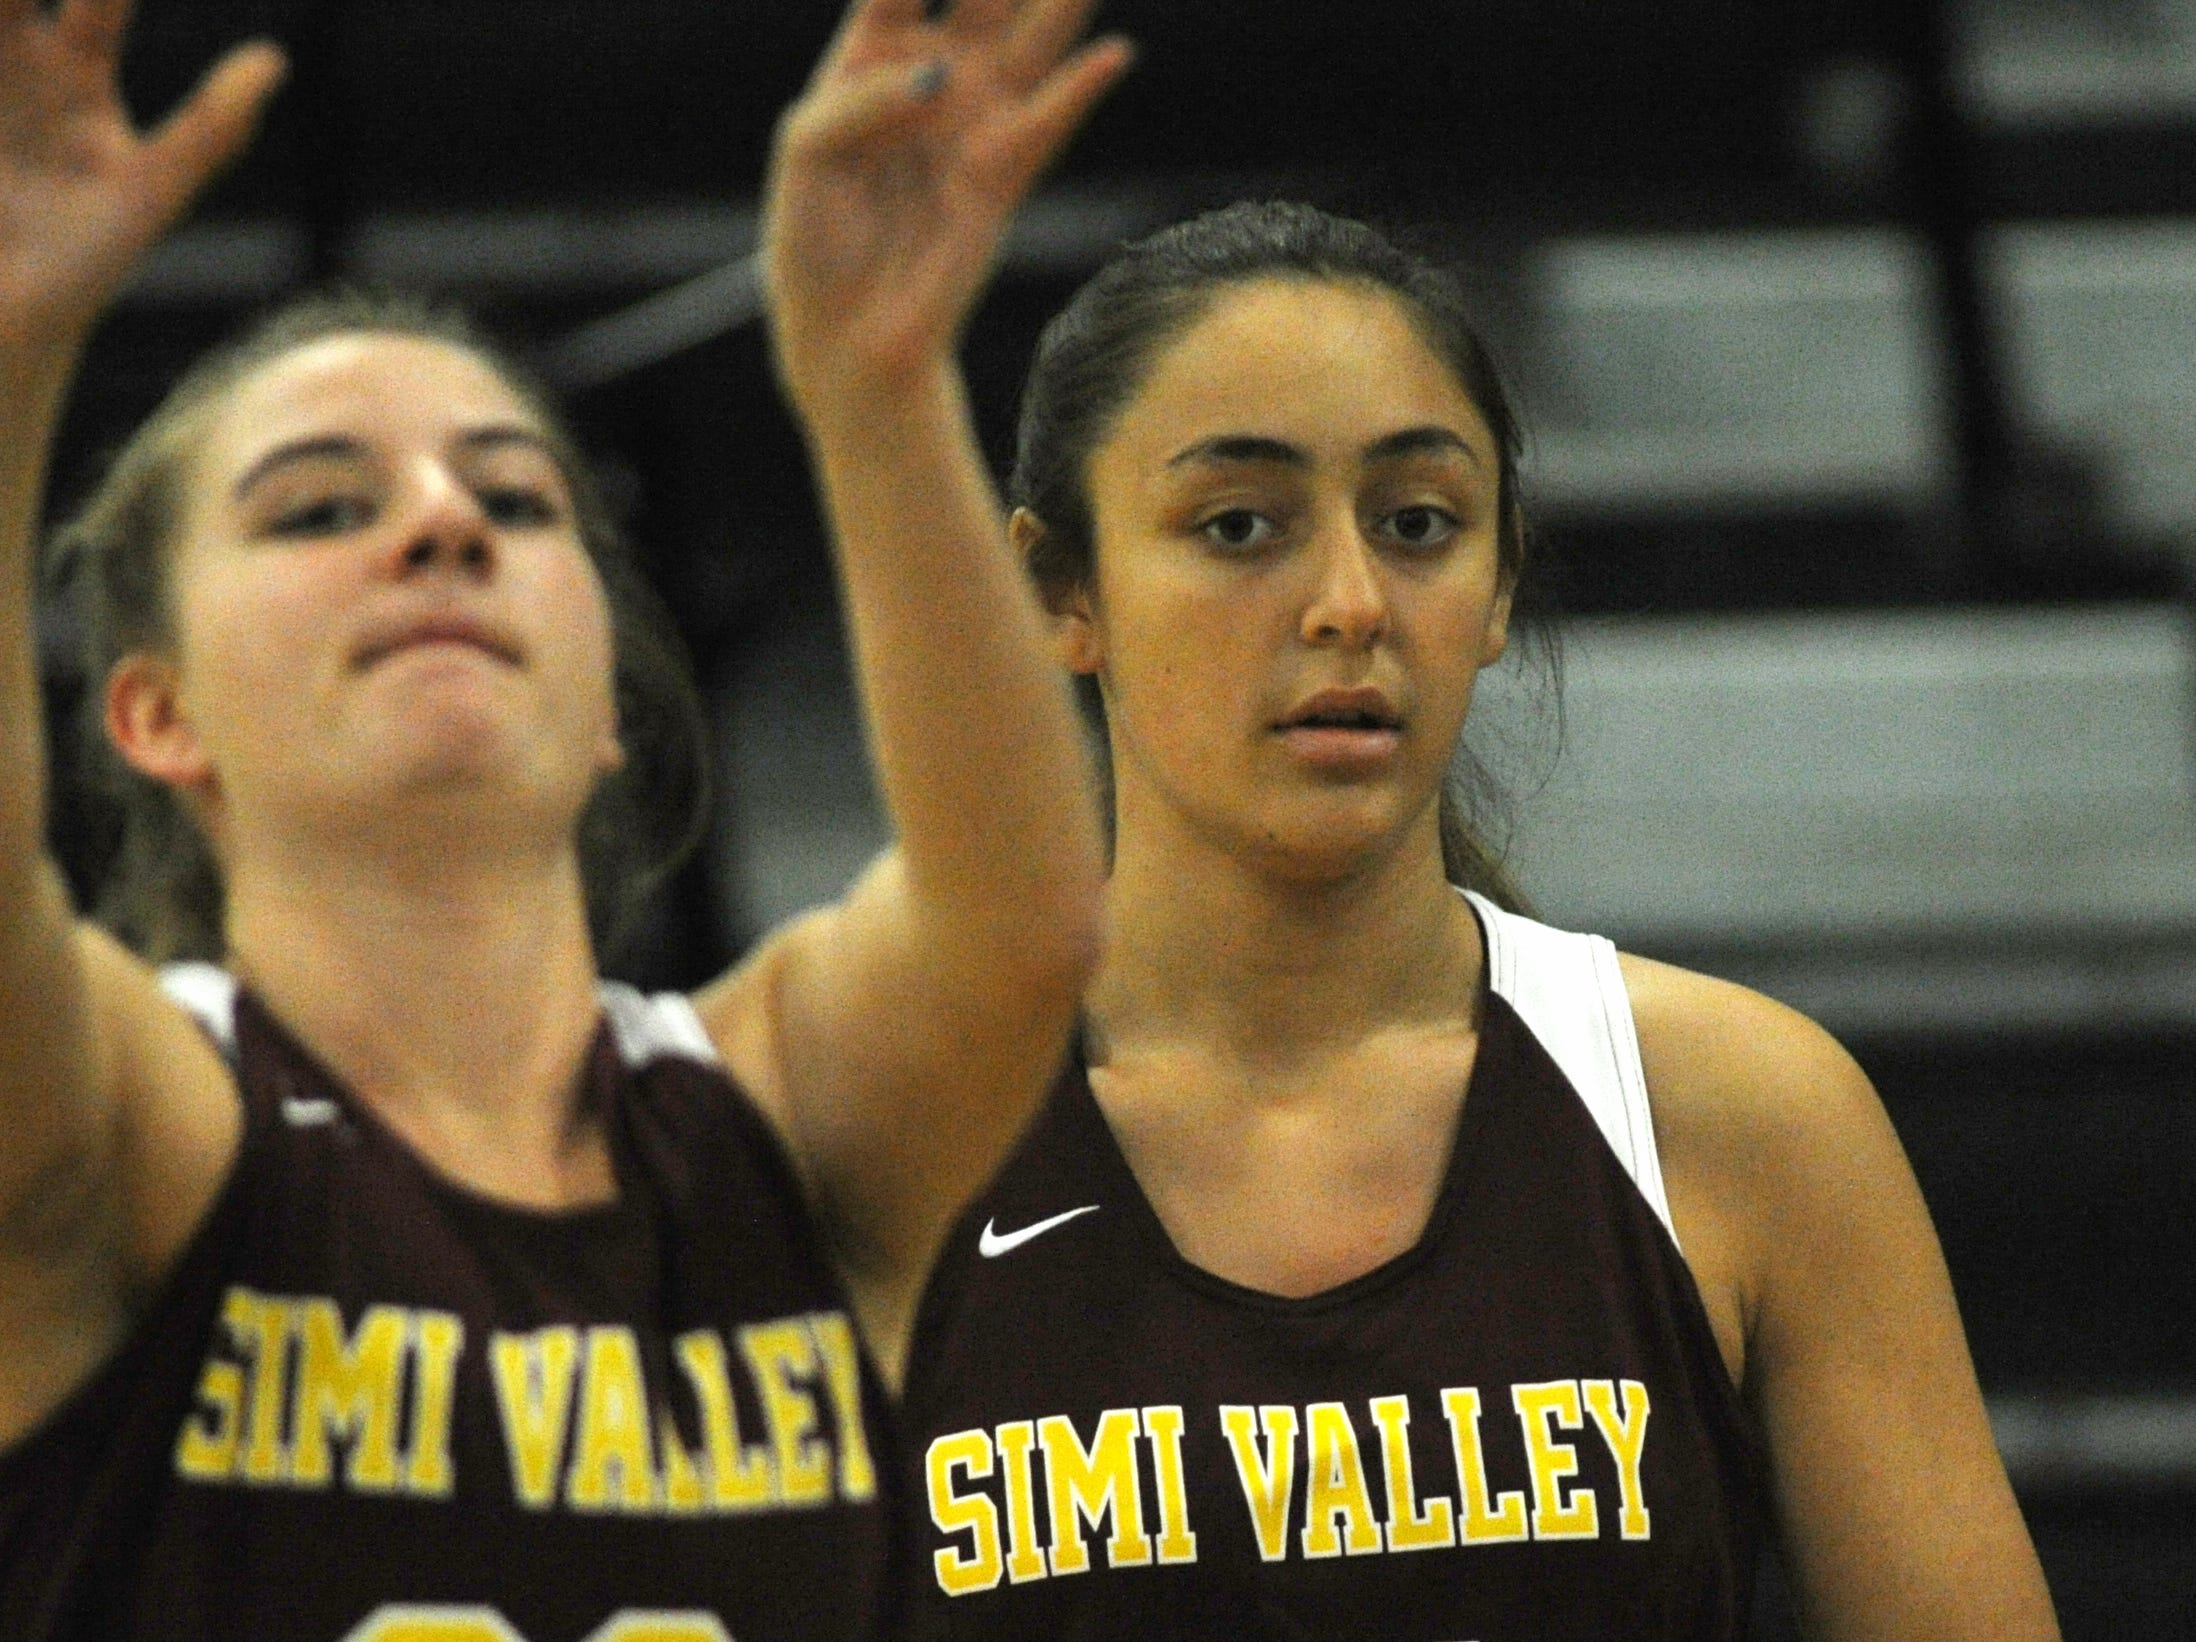 Simi Valley's Madison Carabello, left, and Alicia Porter warm up before Wednesday's game against Buena in the 42nd annual Buena-Kiwanis Girls Basketball Tournament at Buena High. Buena won, 62-34.